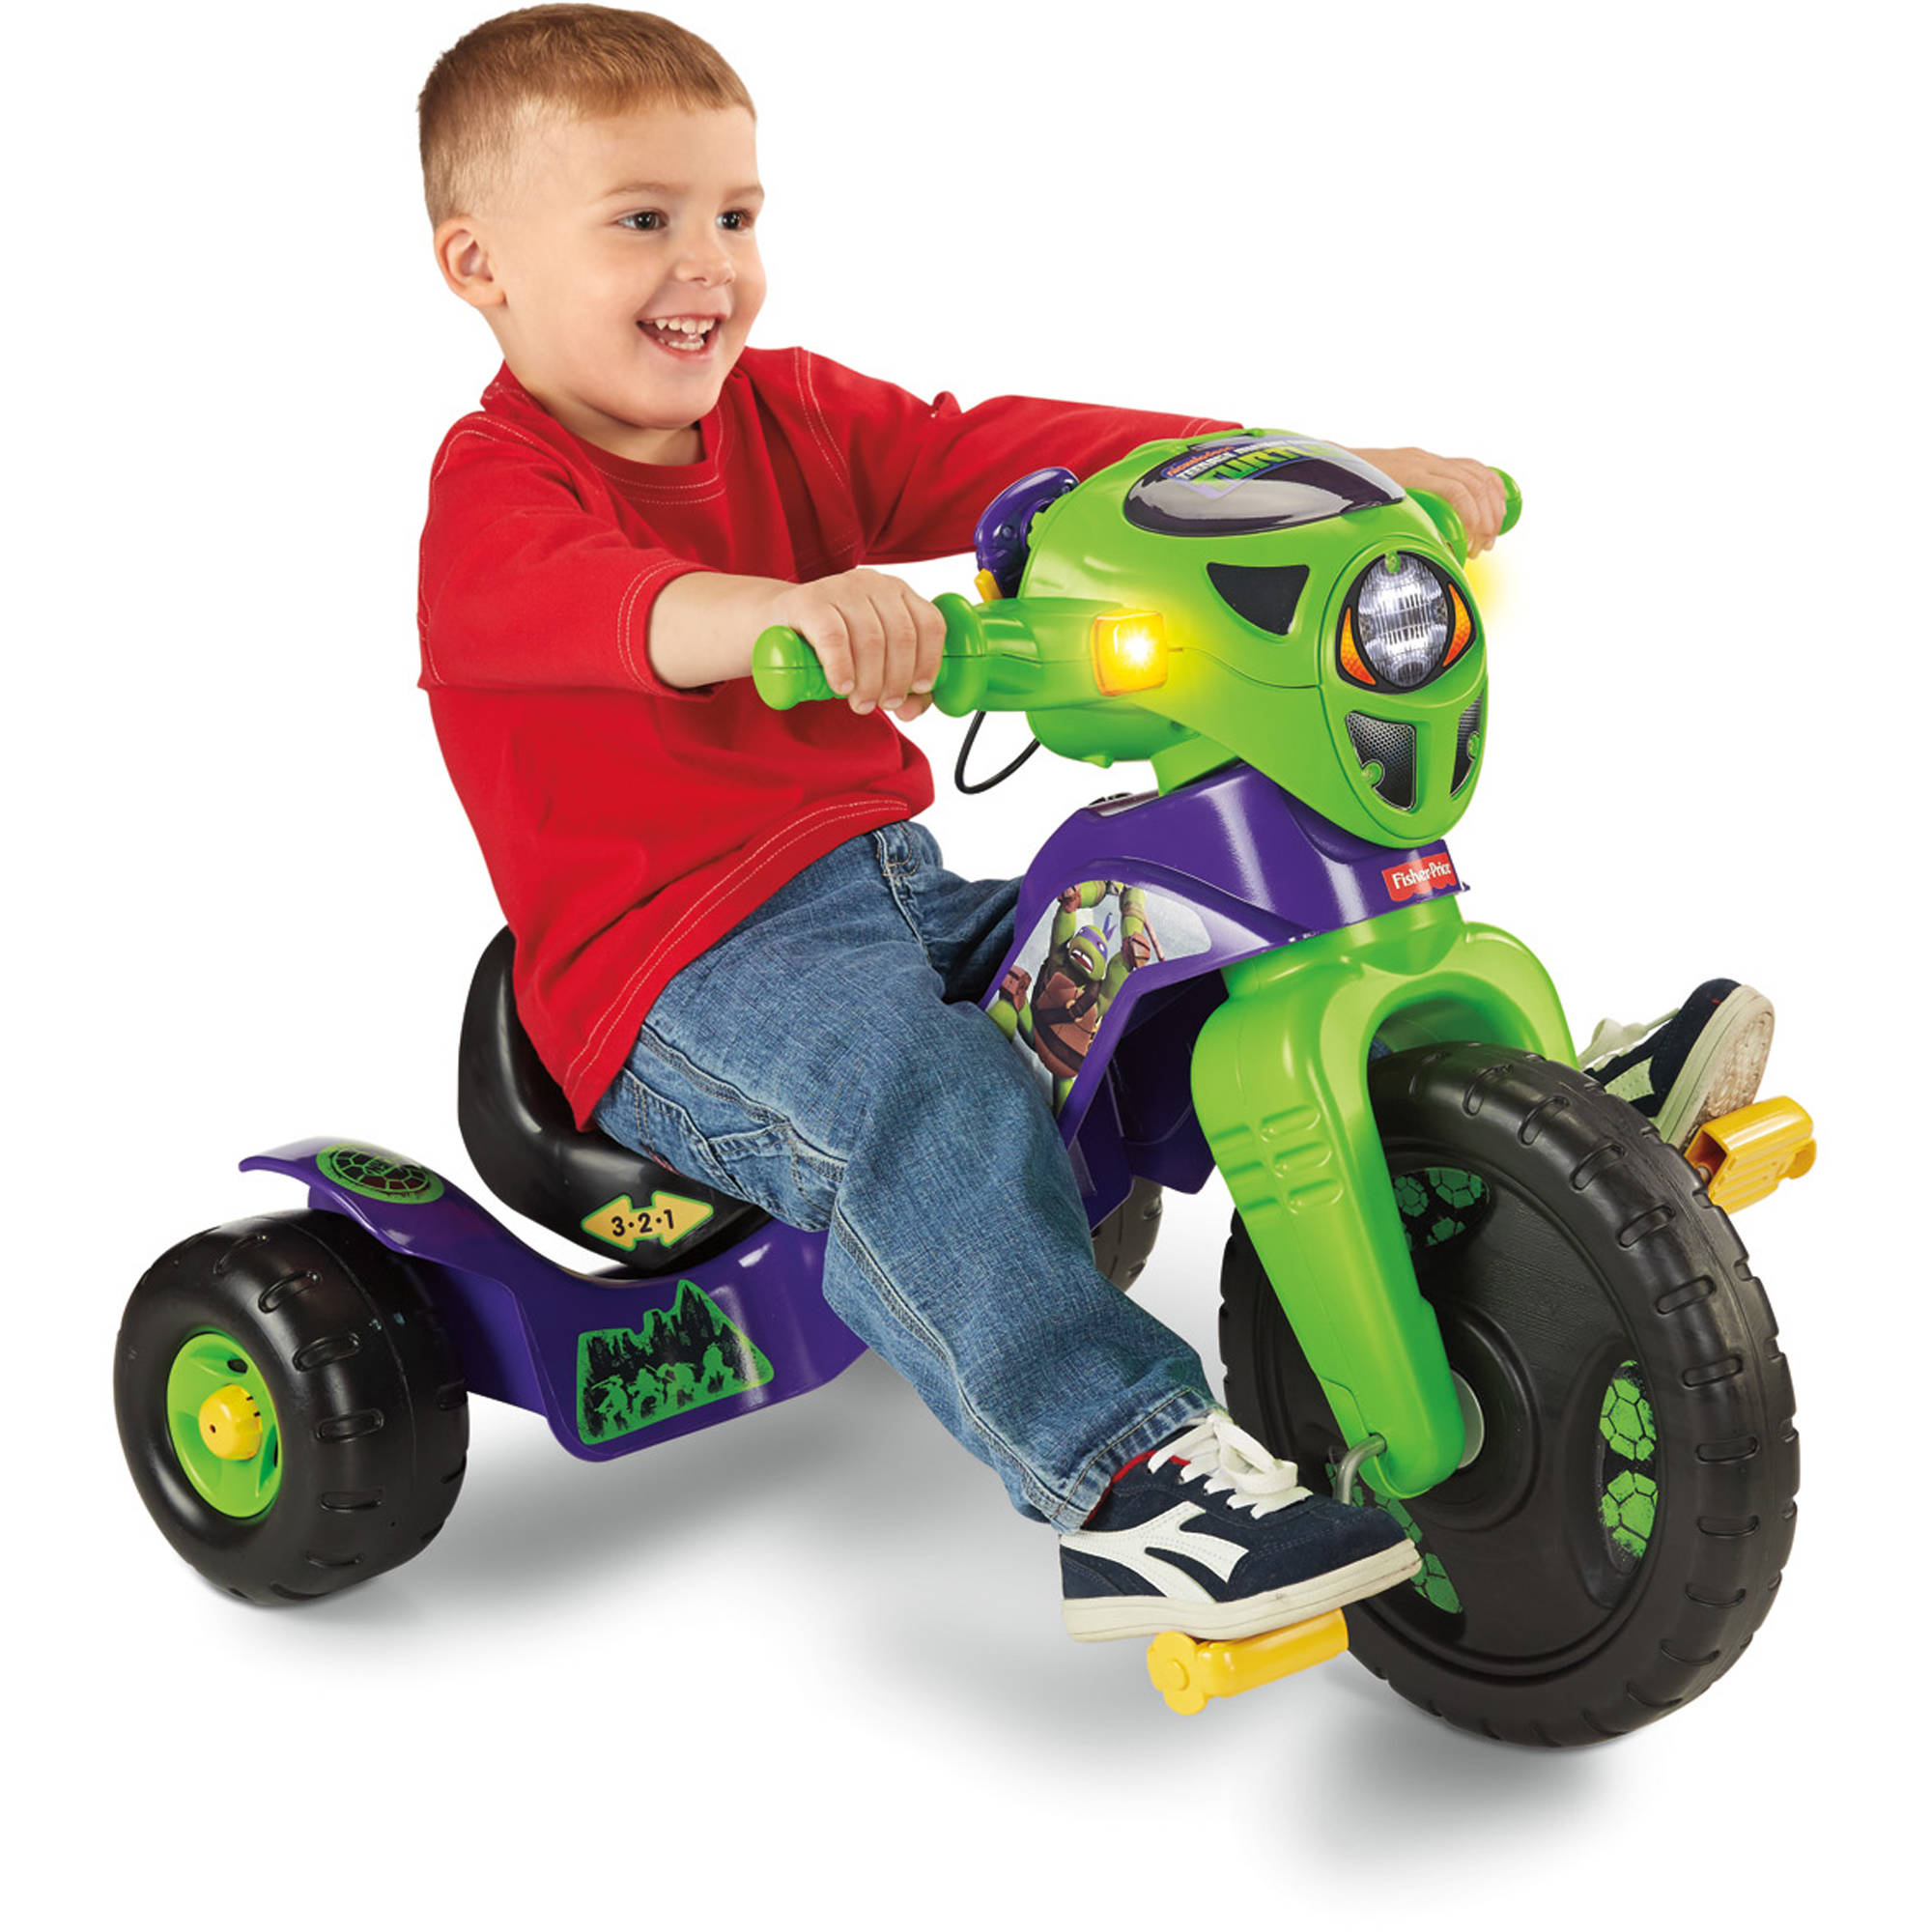 Fisher Price Lights & Sounds Teenage Mutant Ninja Turtles Pedal